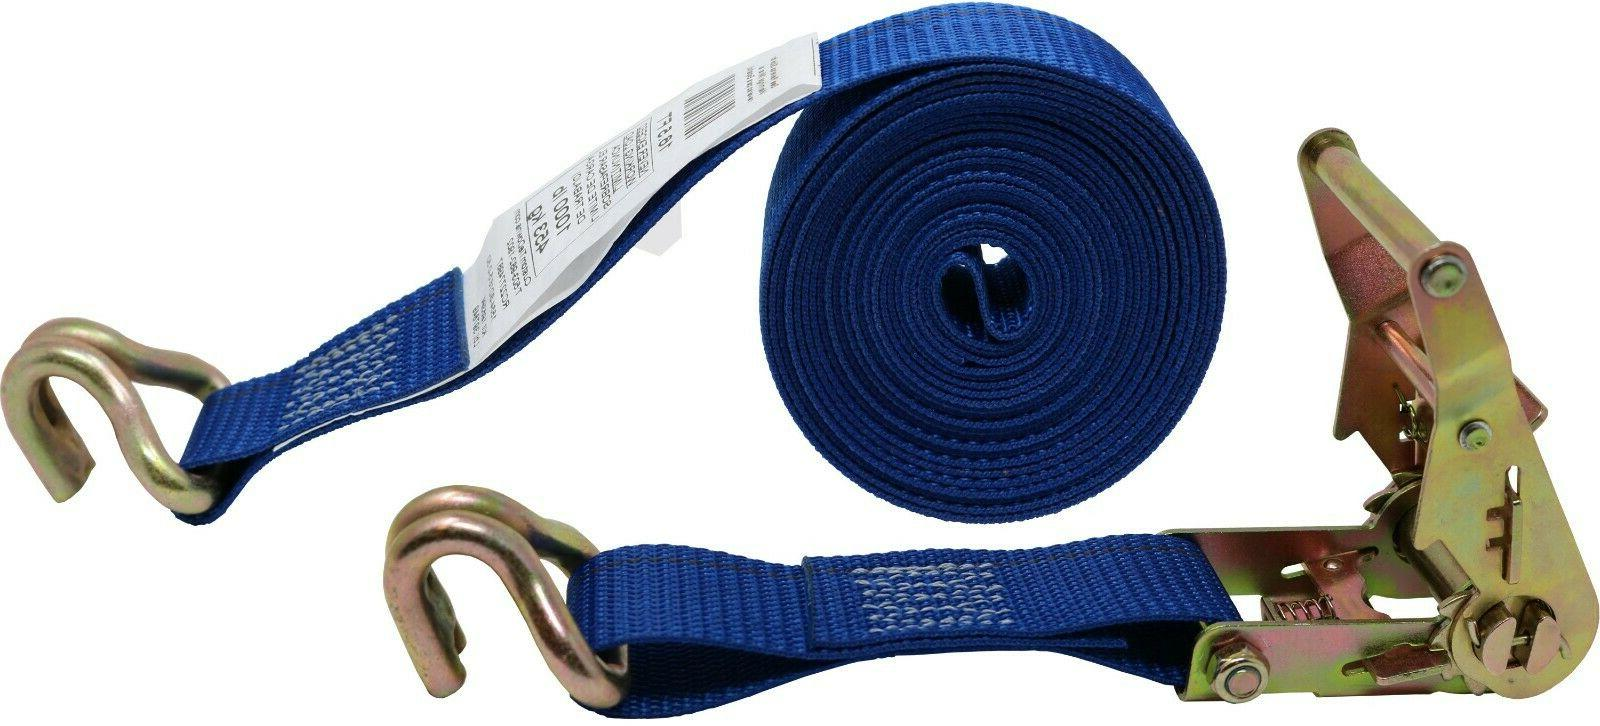 ctdusa 1 5 inch wide ratchet strap